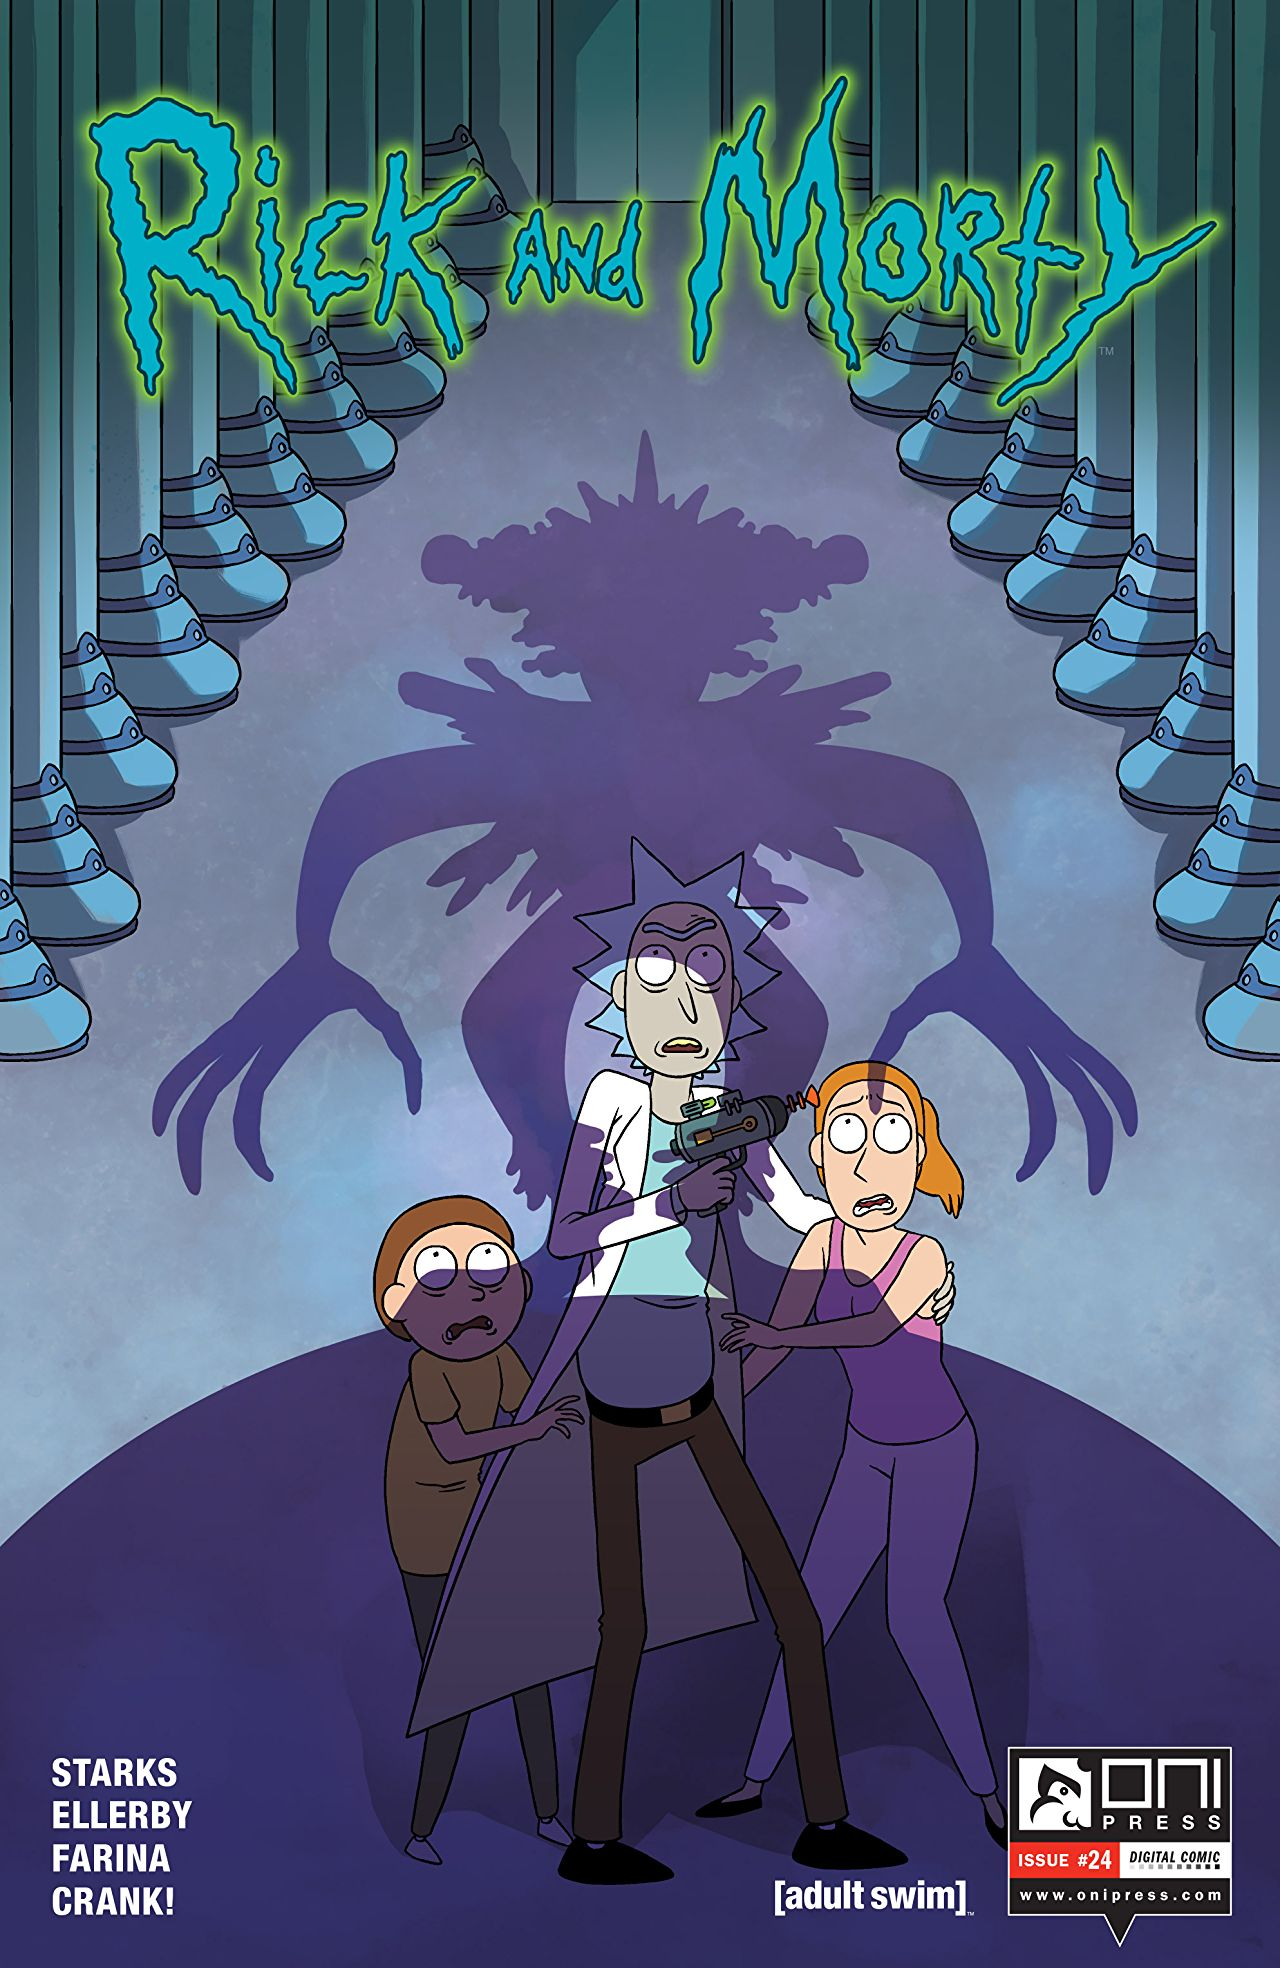 Rick and Morty Issue 24